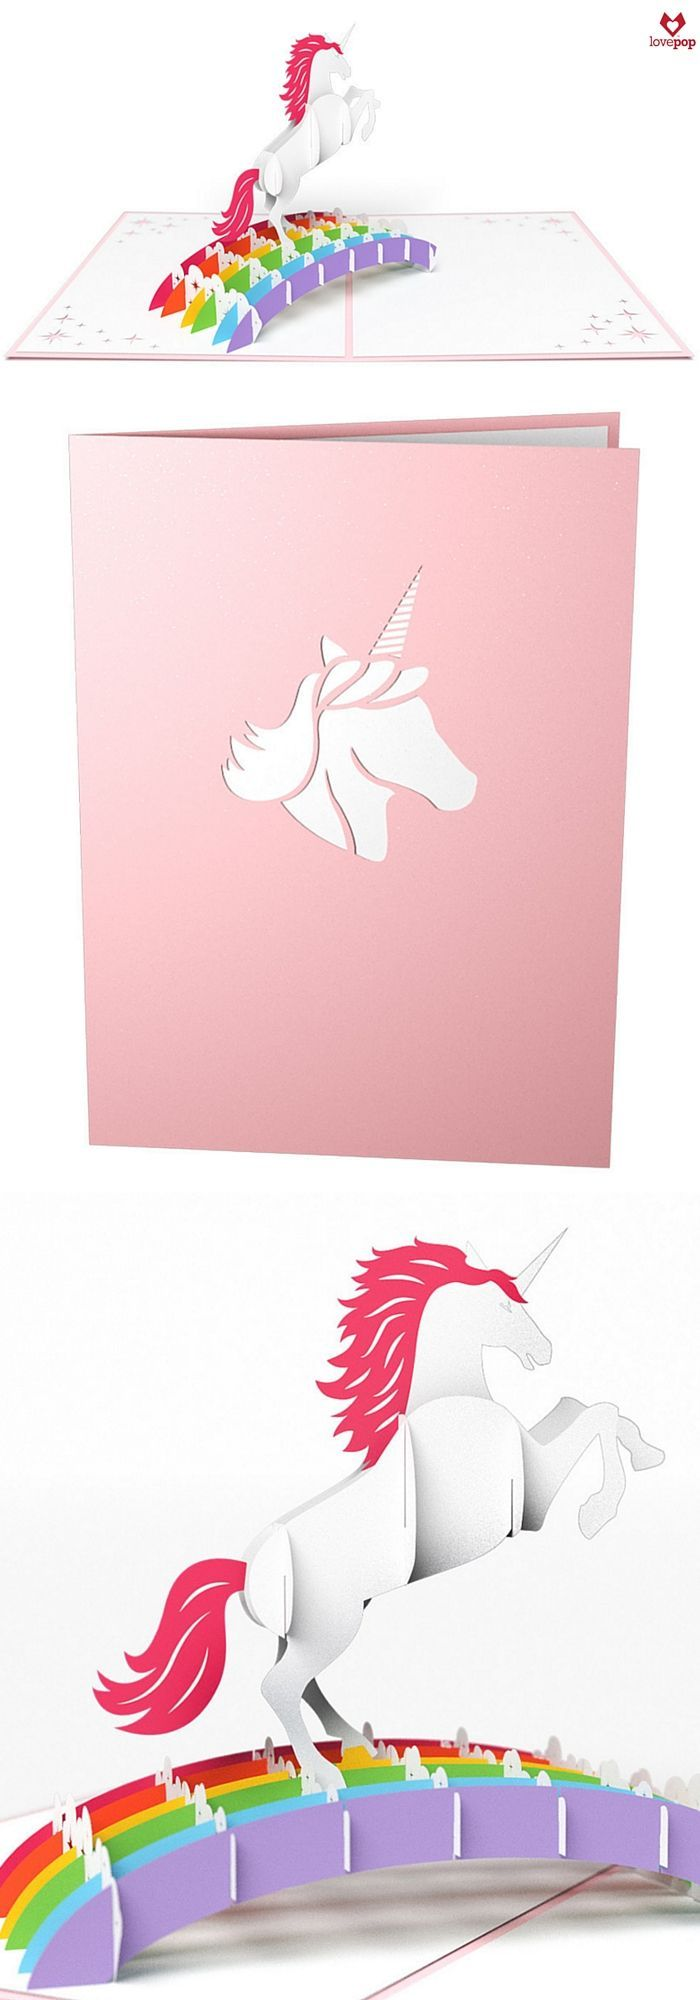 Gift a fun Happy Birthday 3D pop up card for unicorn lovers of any age. #overtherainbow #Unicorns